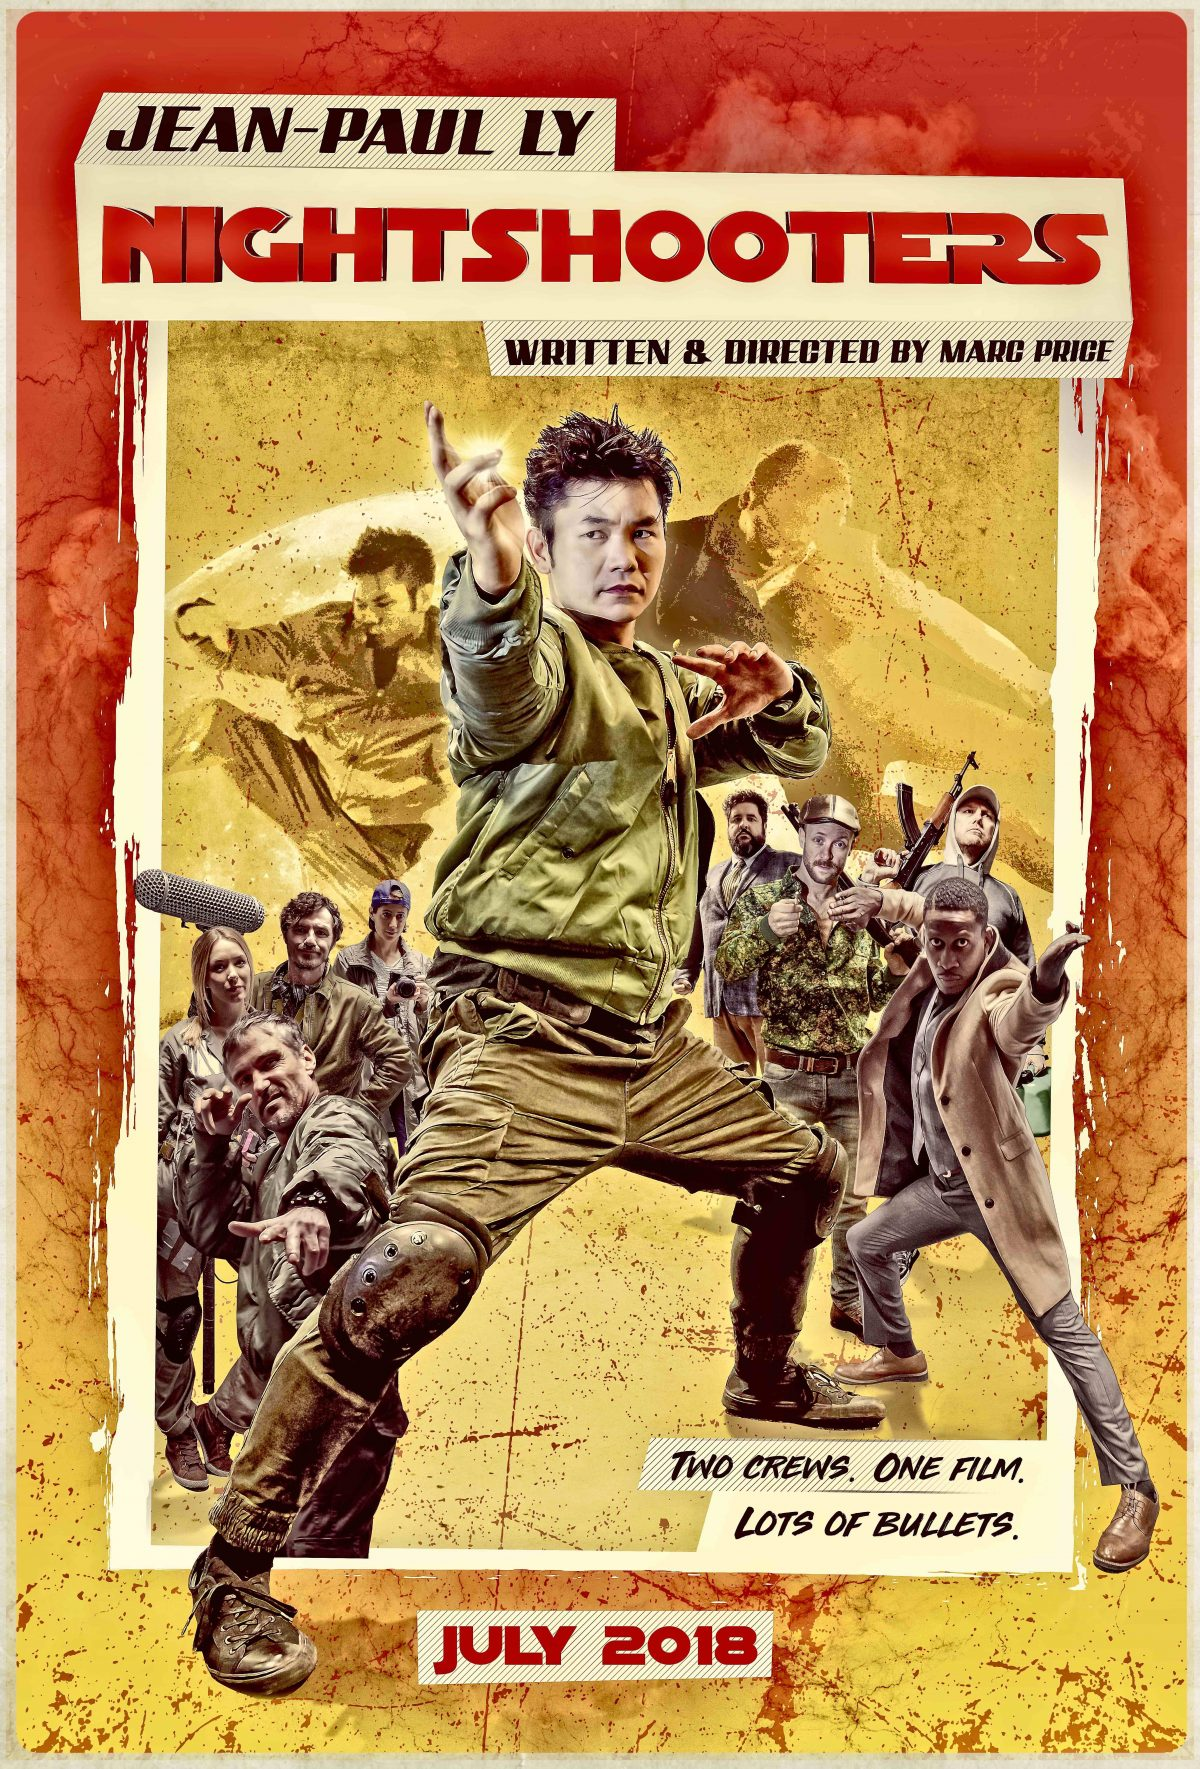 Check out the new Red Band Trailer for #Nightshooters starring Jean-Paul Ly. In select UK cinemas and On Demand 27th July 2018